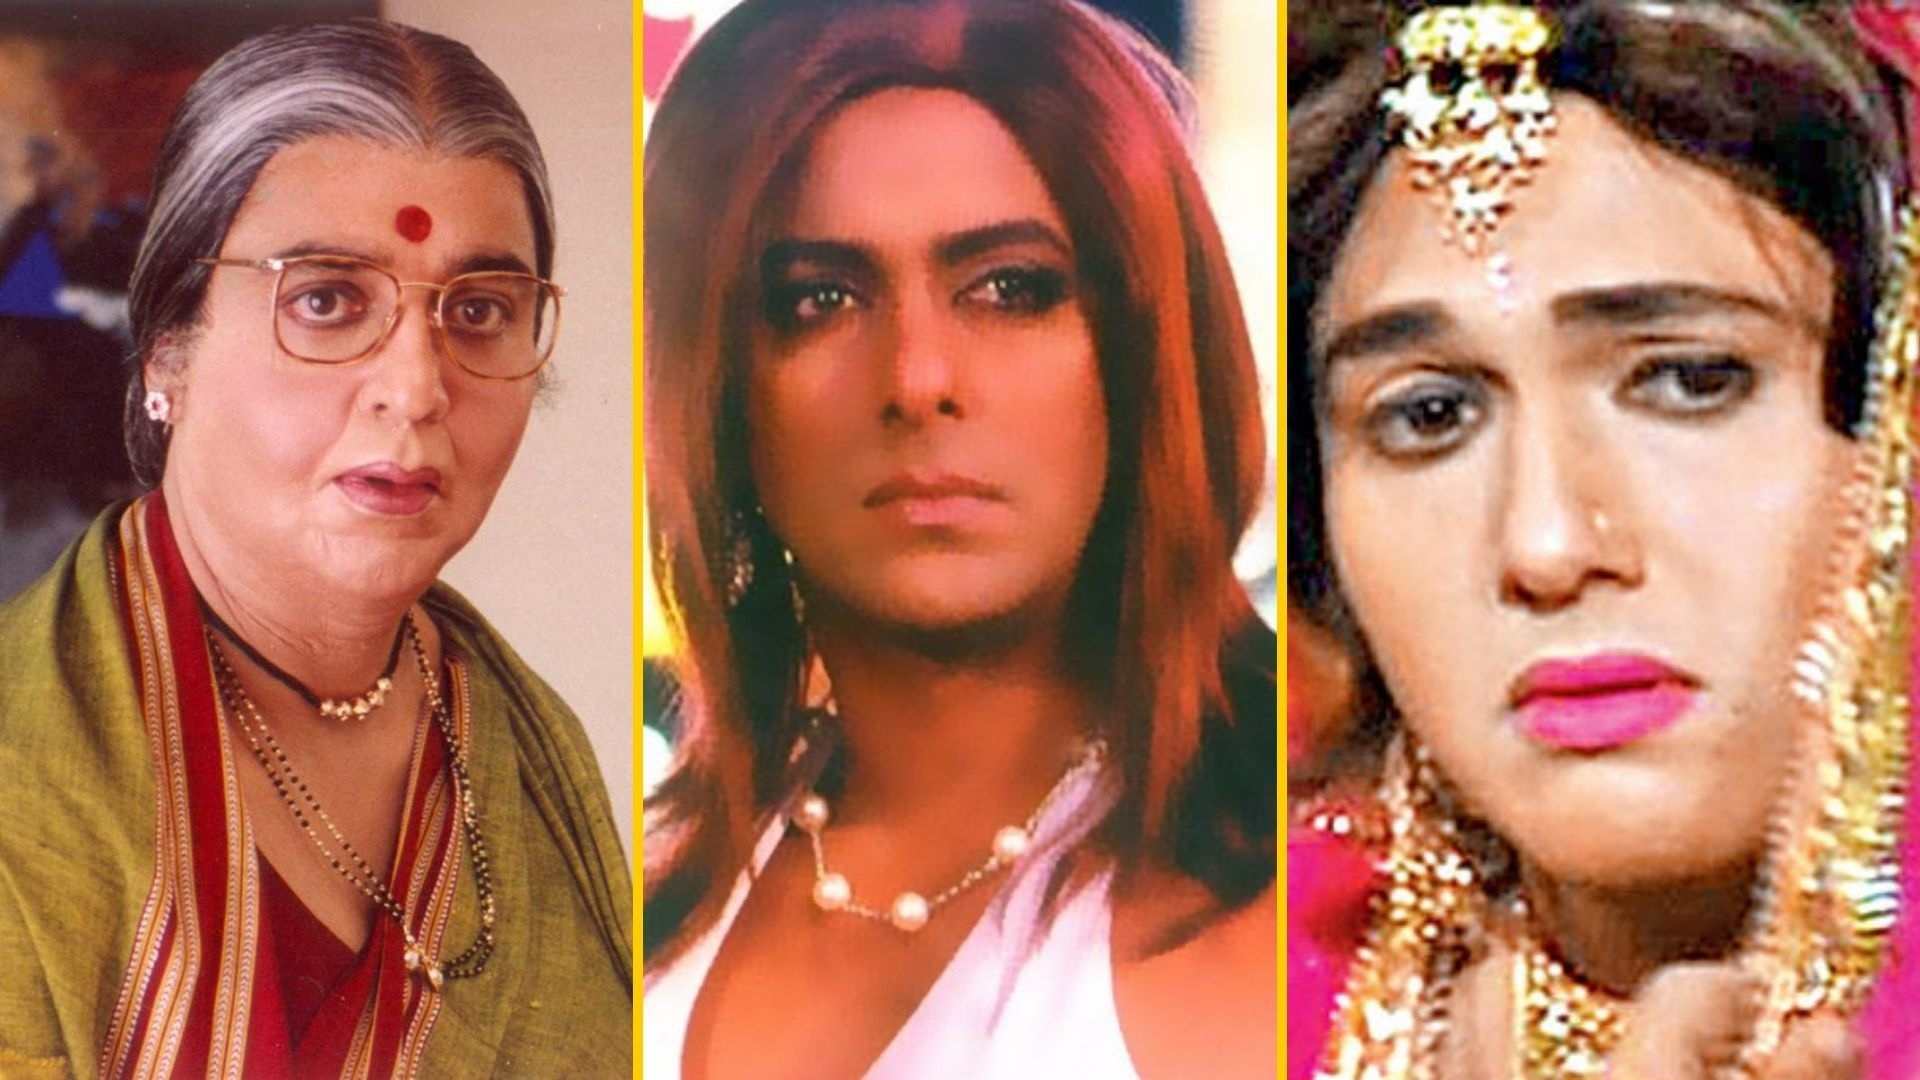 Before Ayushmann, Here Are Some Other Actors Who Cross-Dressed